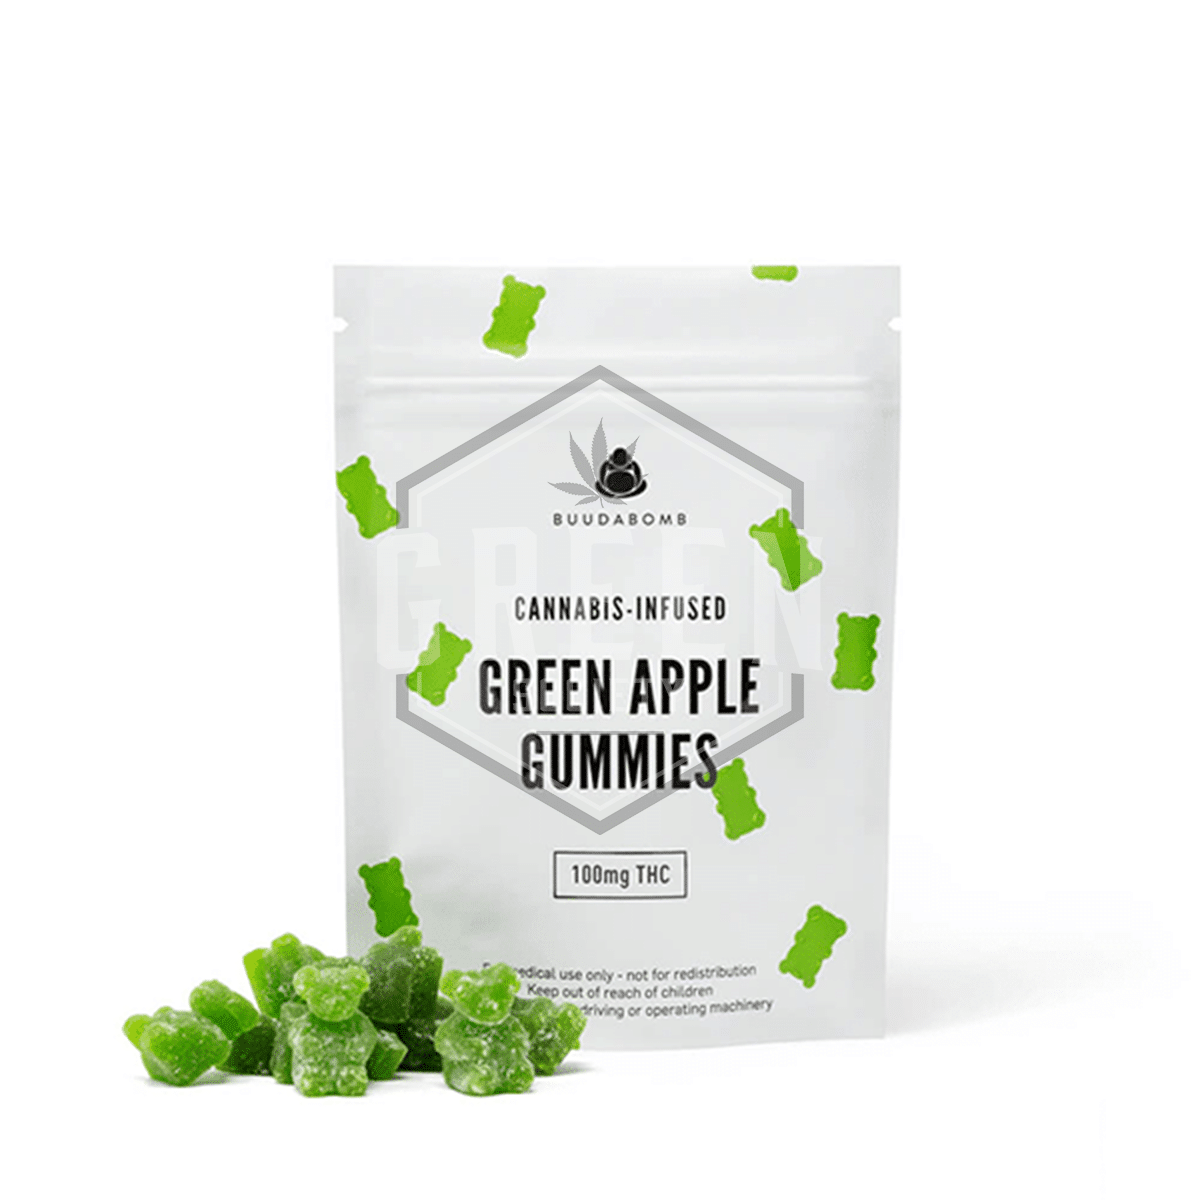 Green Apple Gummies by Buuda Bomb by Green Society - Image © 2018 Green Society. All Rights Reserved.